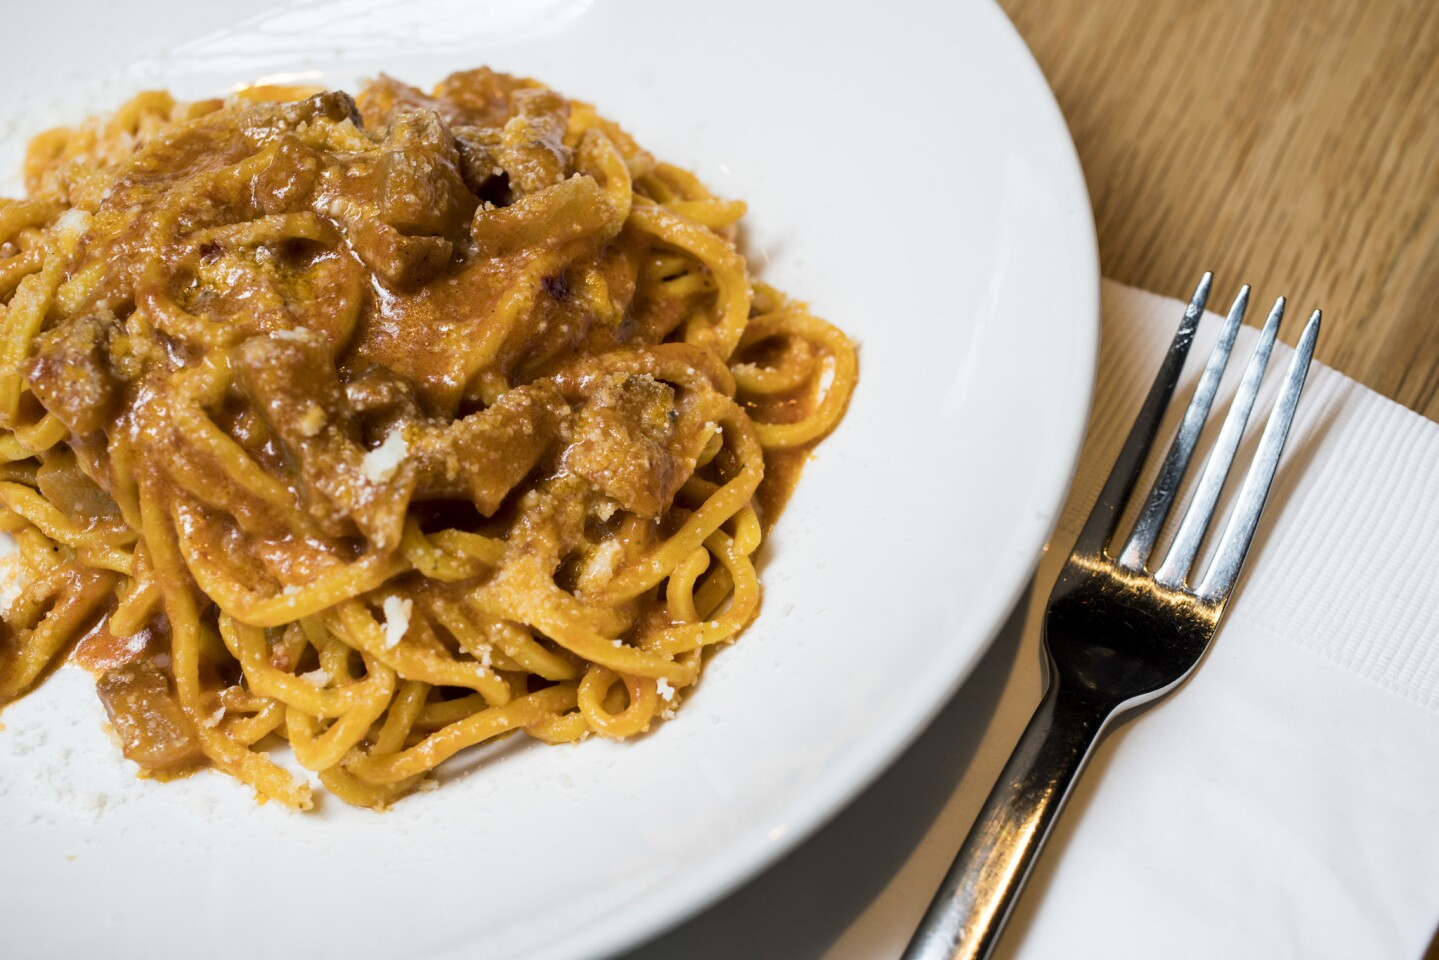 The tonnarelli all'Amatriciana at Uovo may just be the best dish of its kind in town.